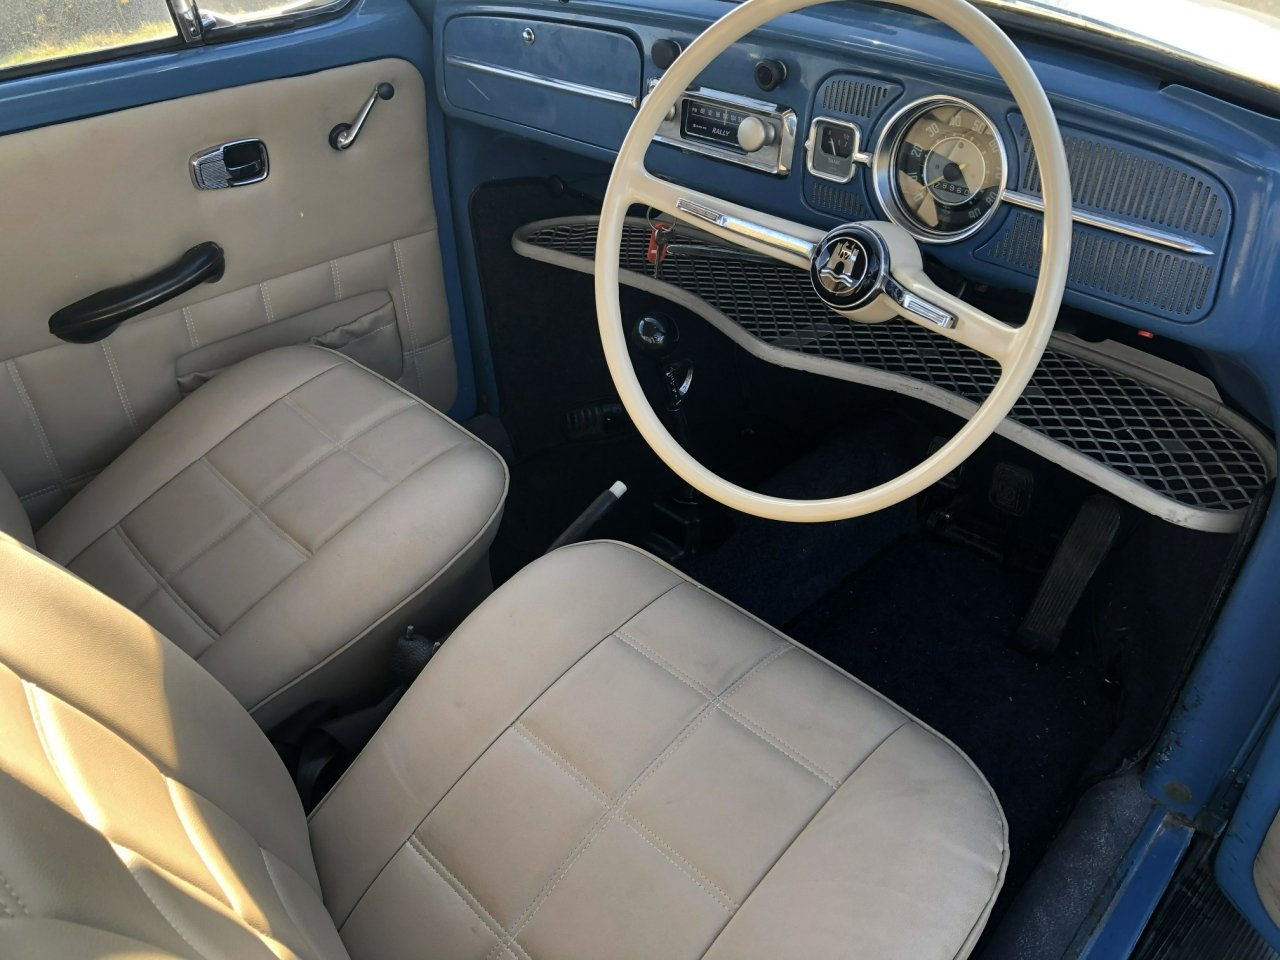 1967 Volkswagen Beetle 1300cc SOLD (picture 5 of 6)